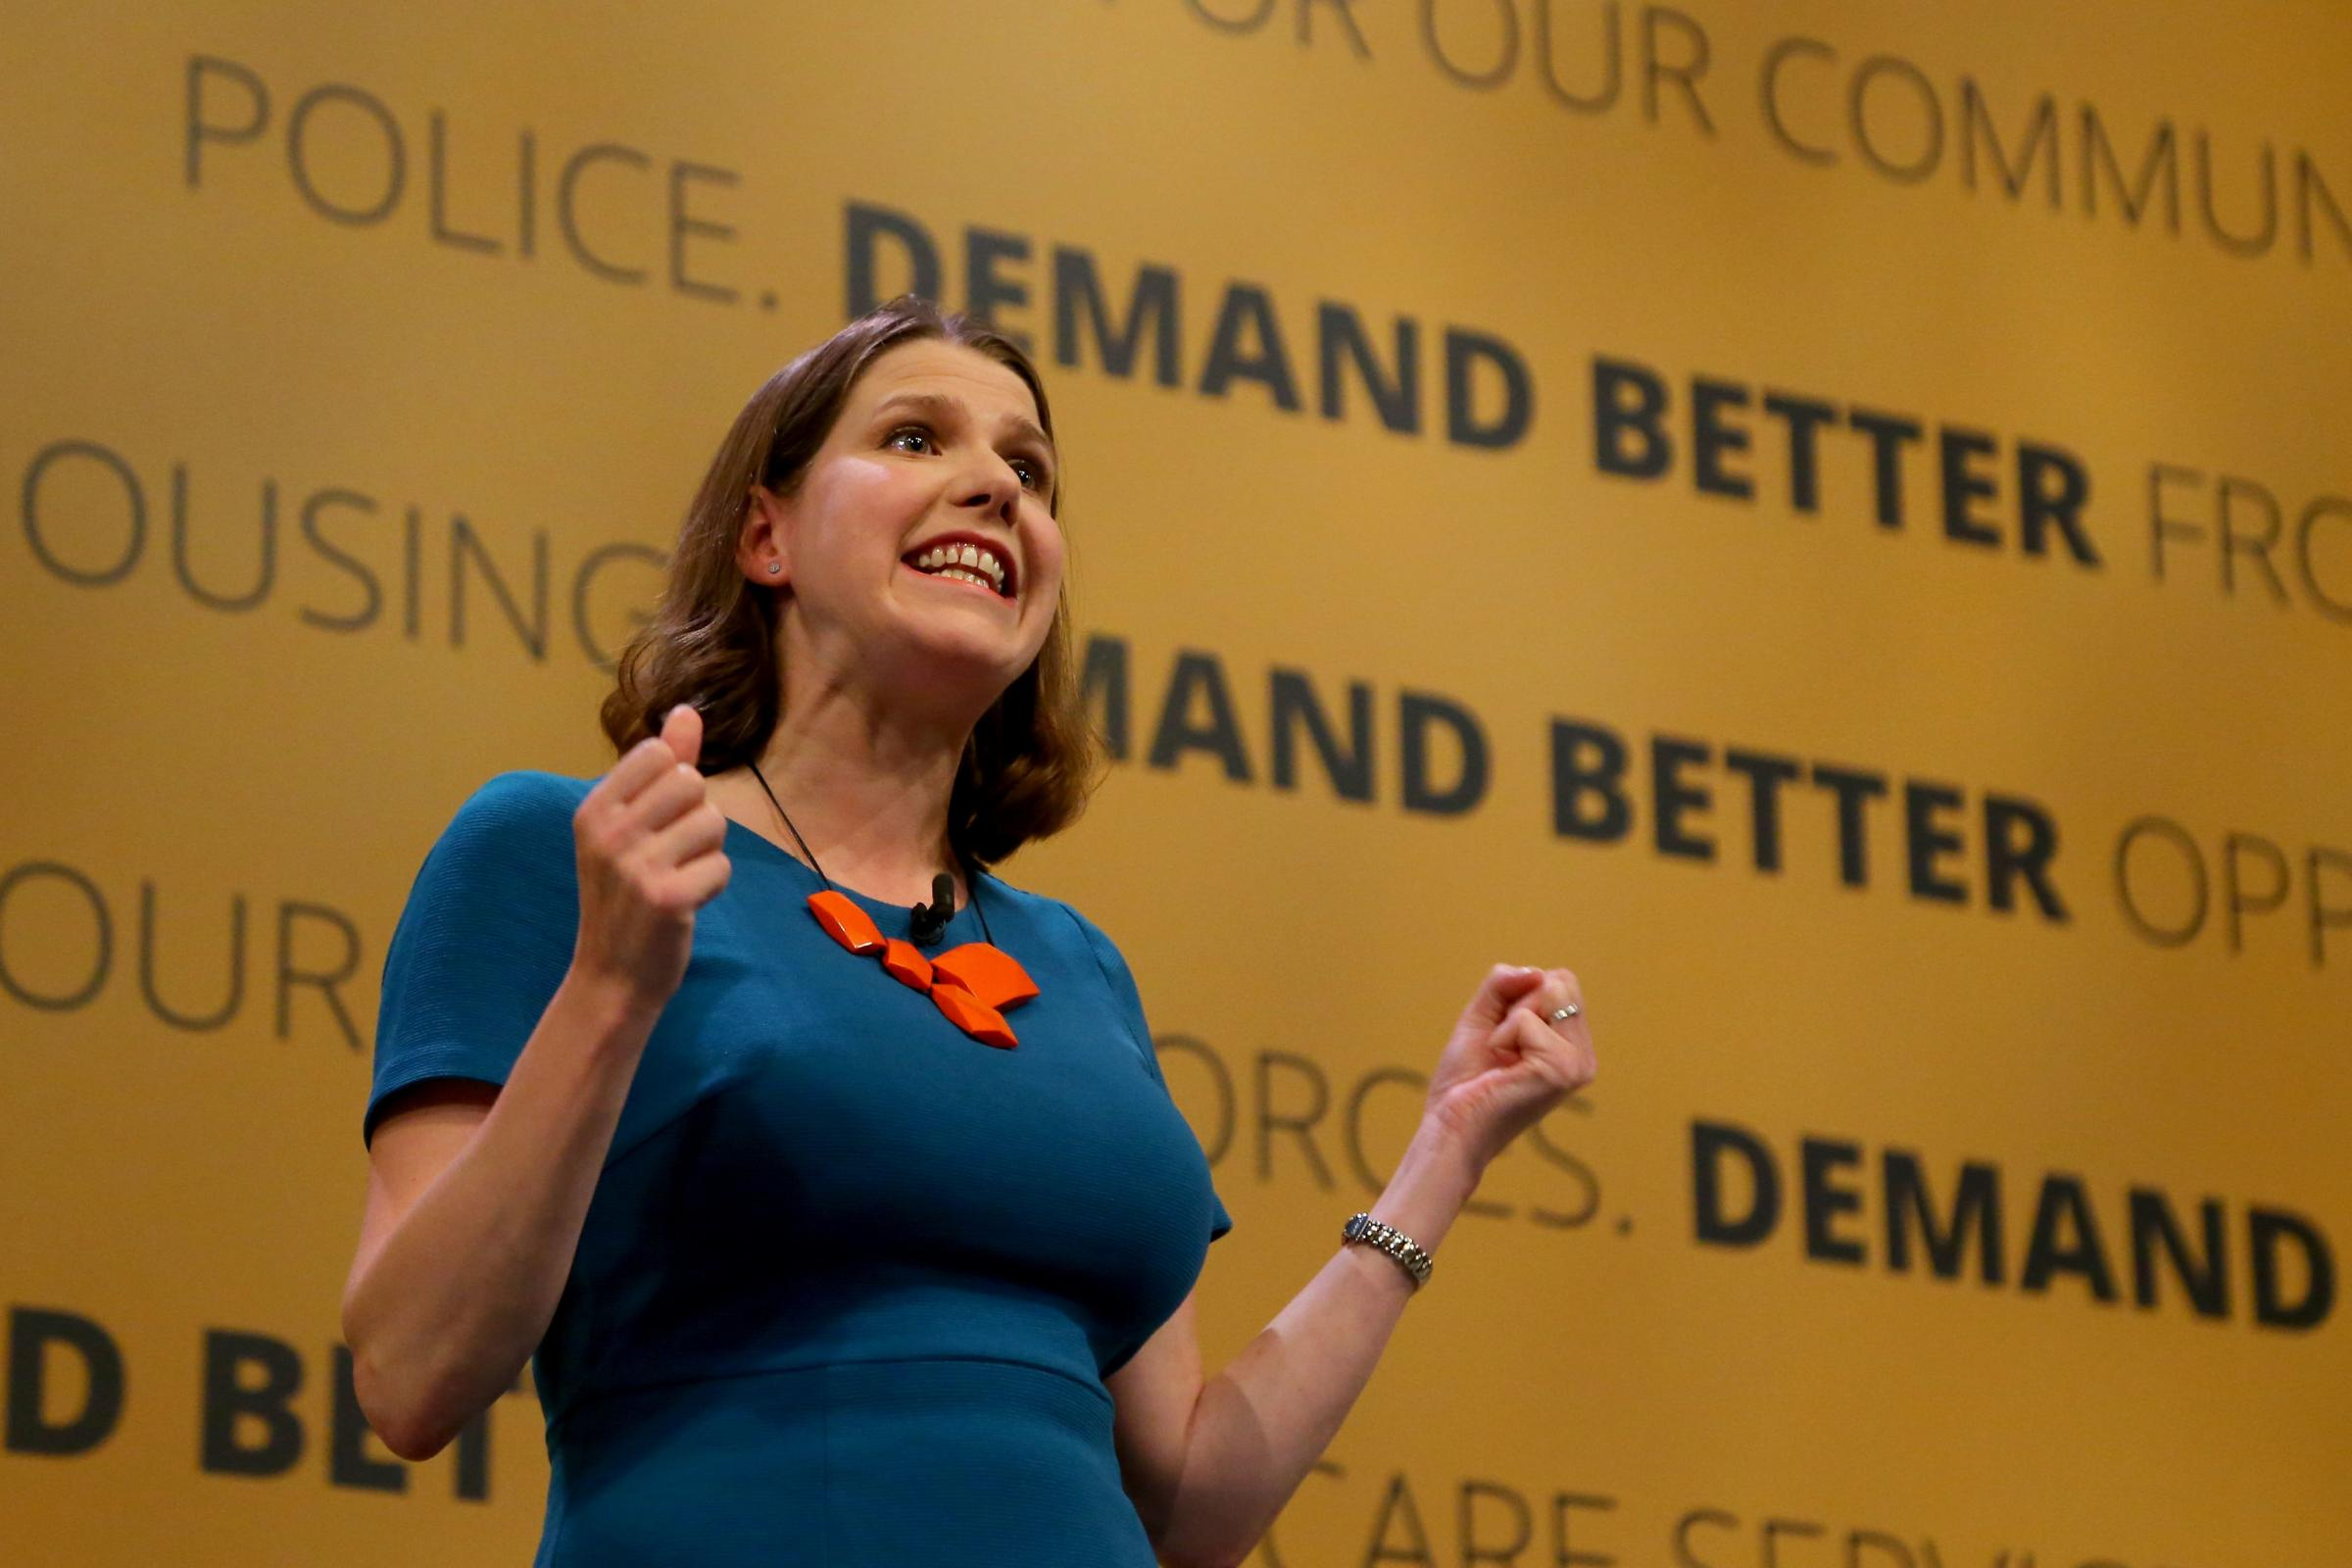 Liberal Democrat MP Jo Swinson